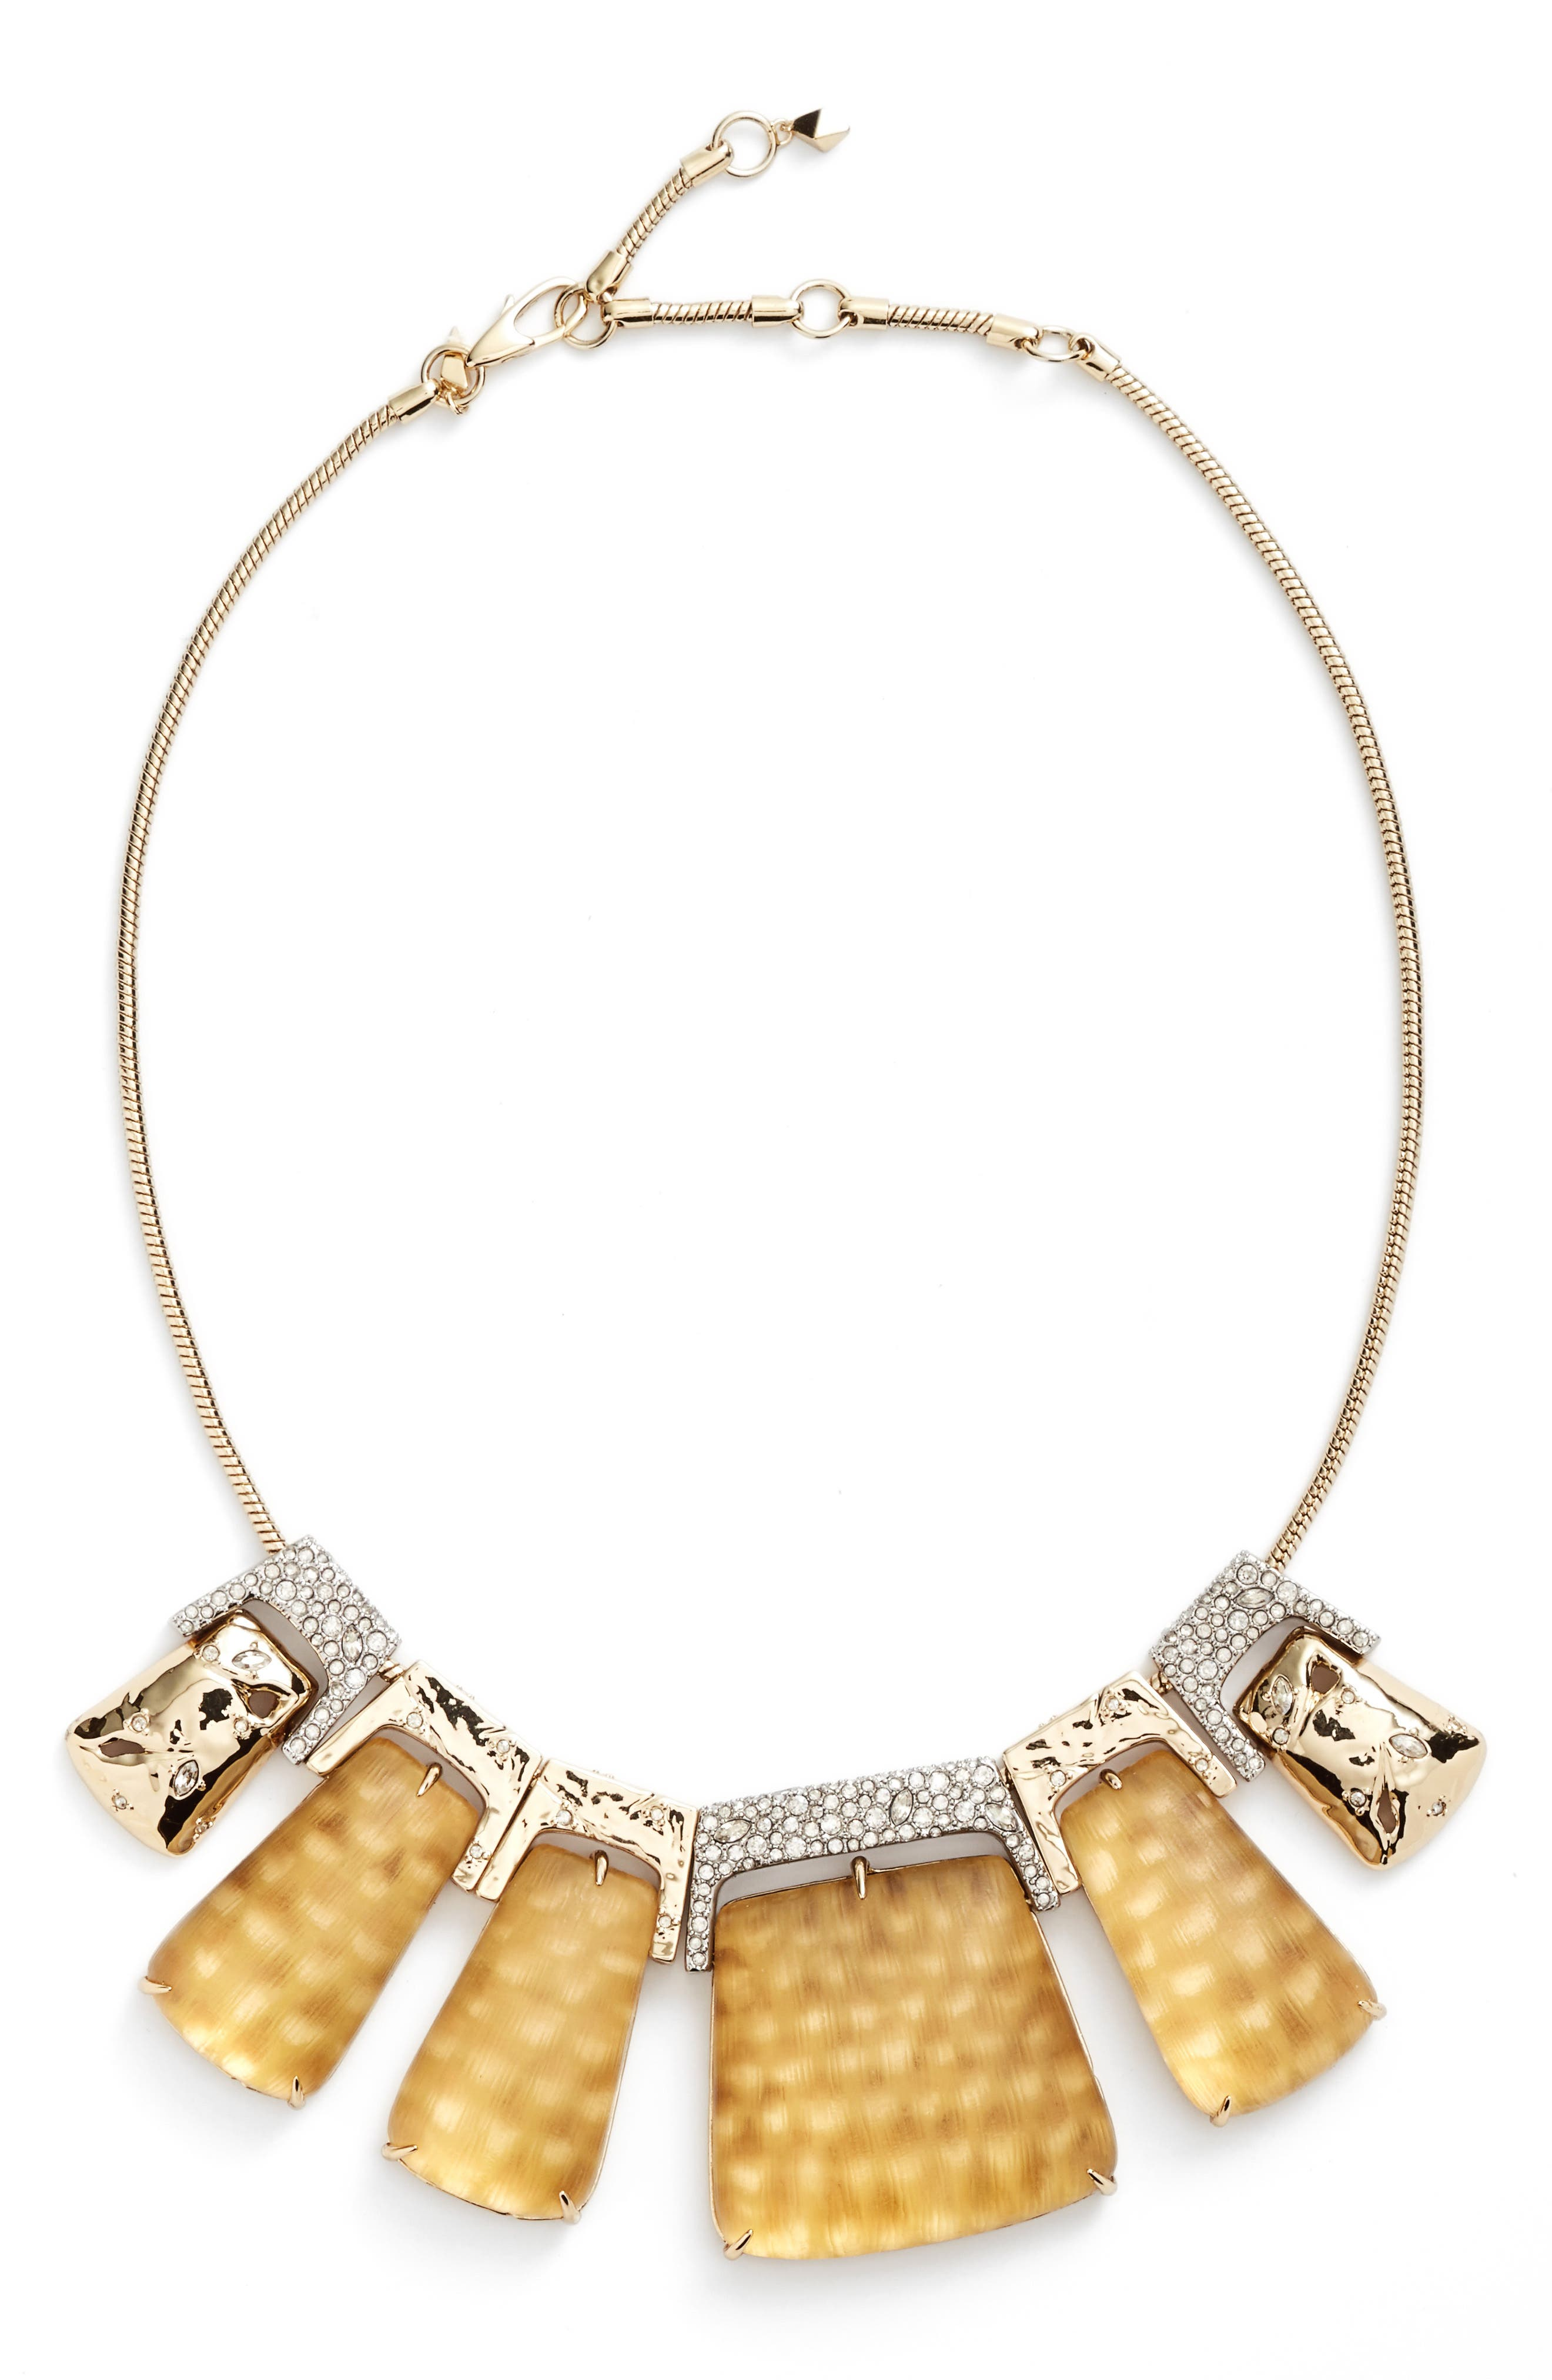 Lucite<sup>®</sup> Crystal Accent Crystal Collar Necklace,                             Main thumbnail 1, color,                             710